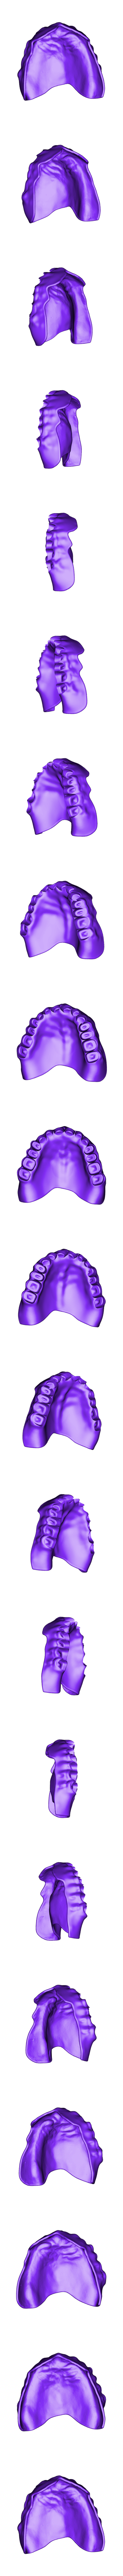 1415201873_20180318_2209_Rami ME6D7FA70019E9494E8CB45CD0B43E24DA 2.stl Download OBJ file Full Dentures with Many Production Options  • 3D printing object, LabMagic3DCAD